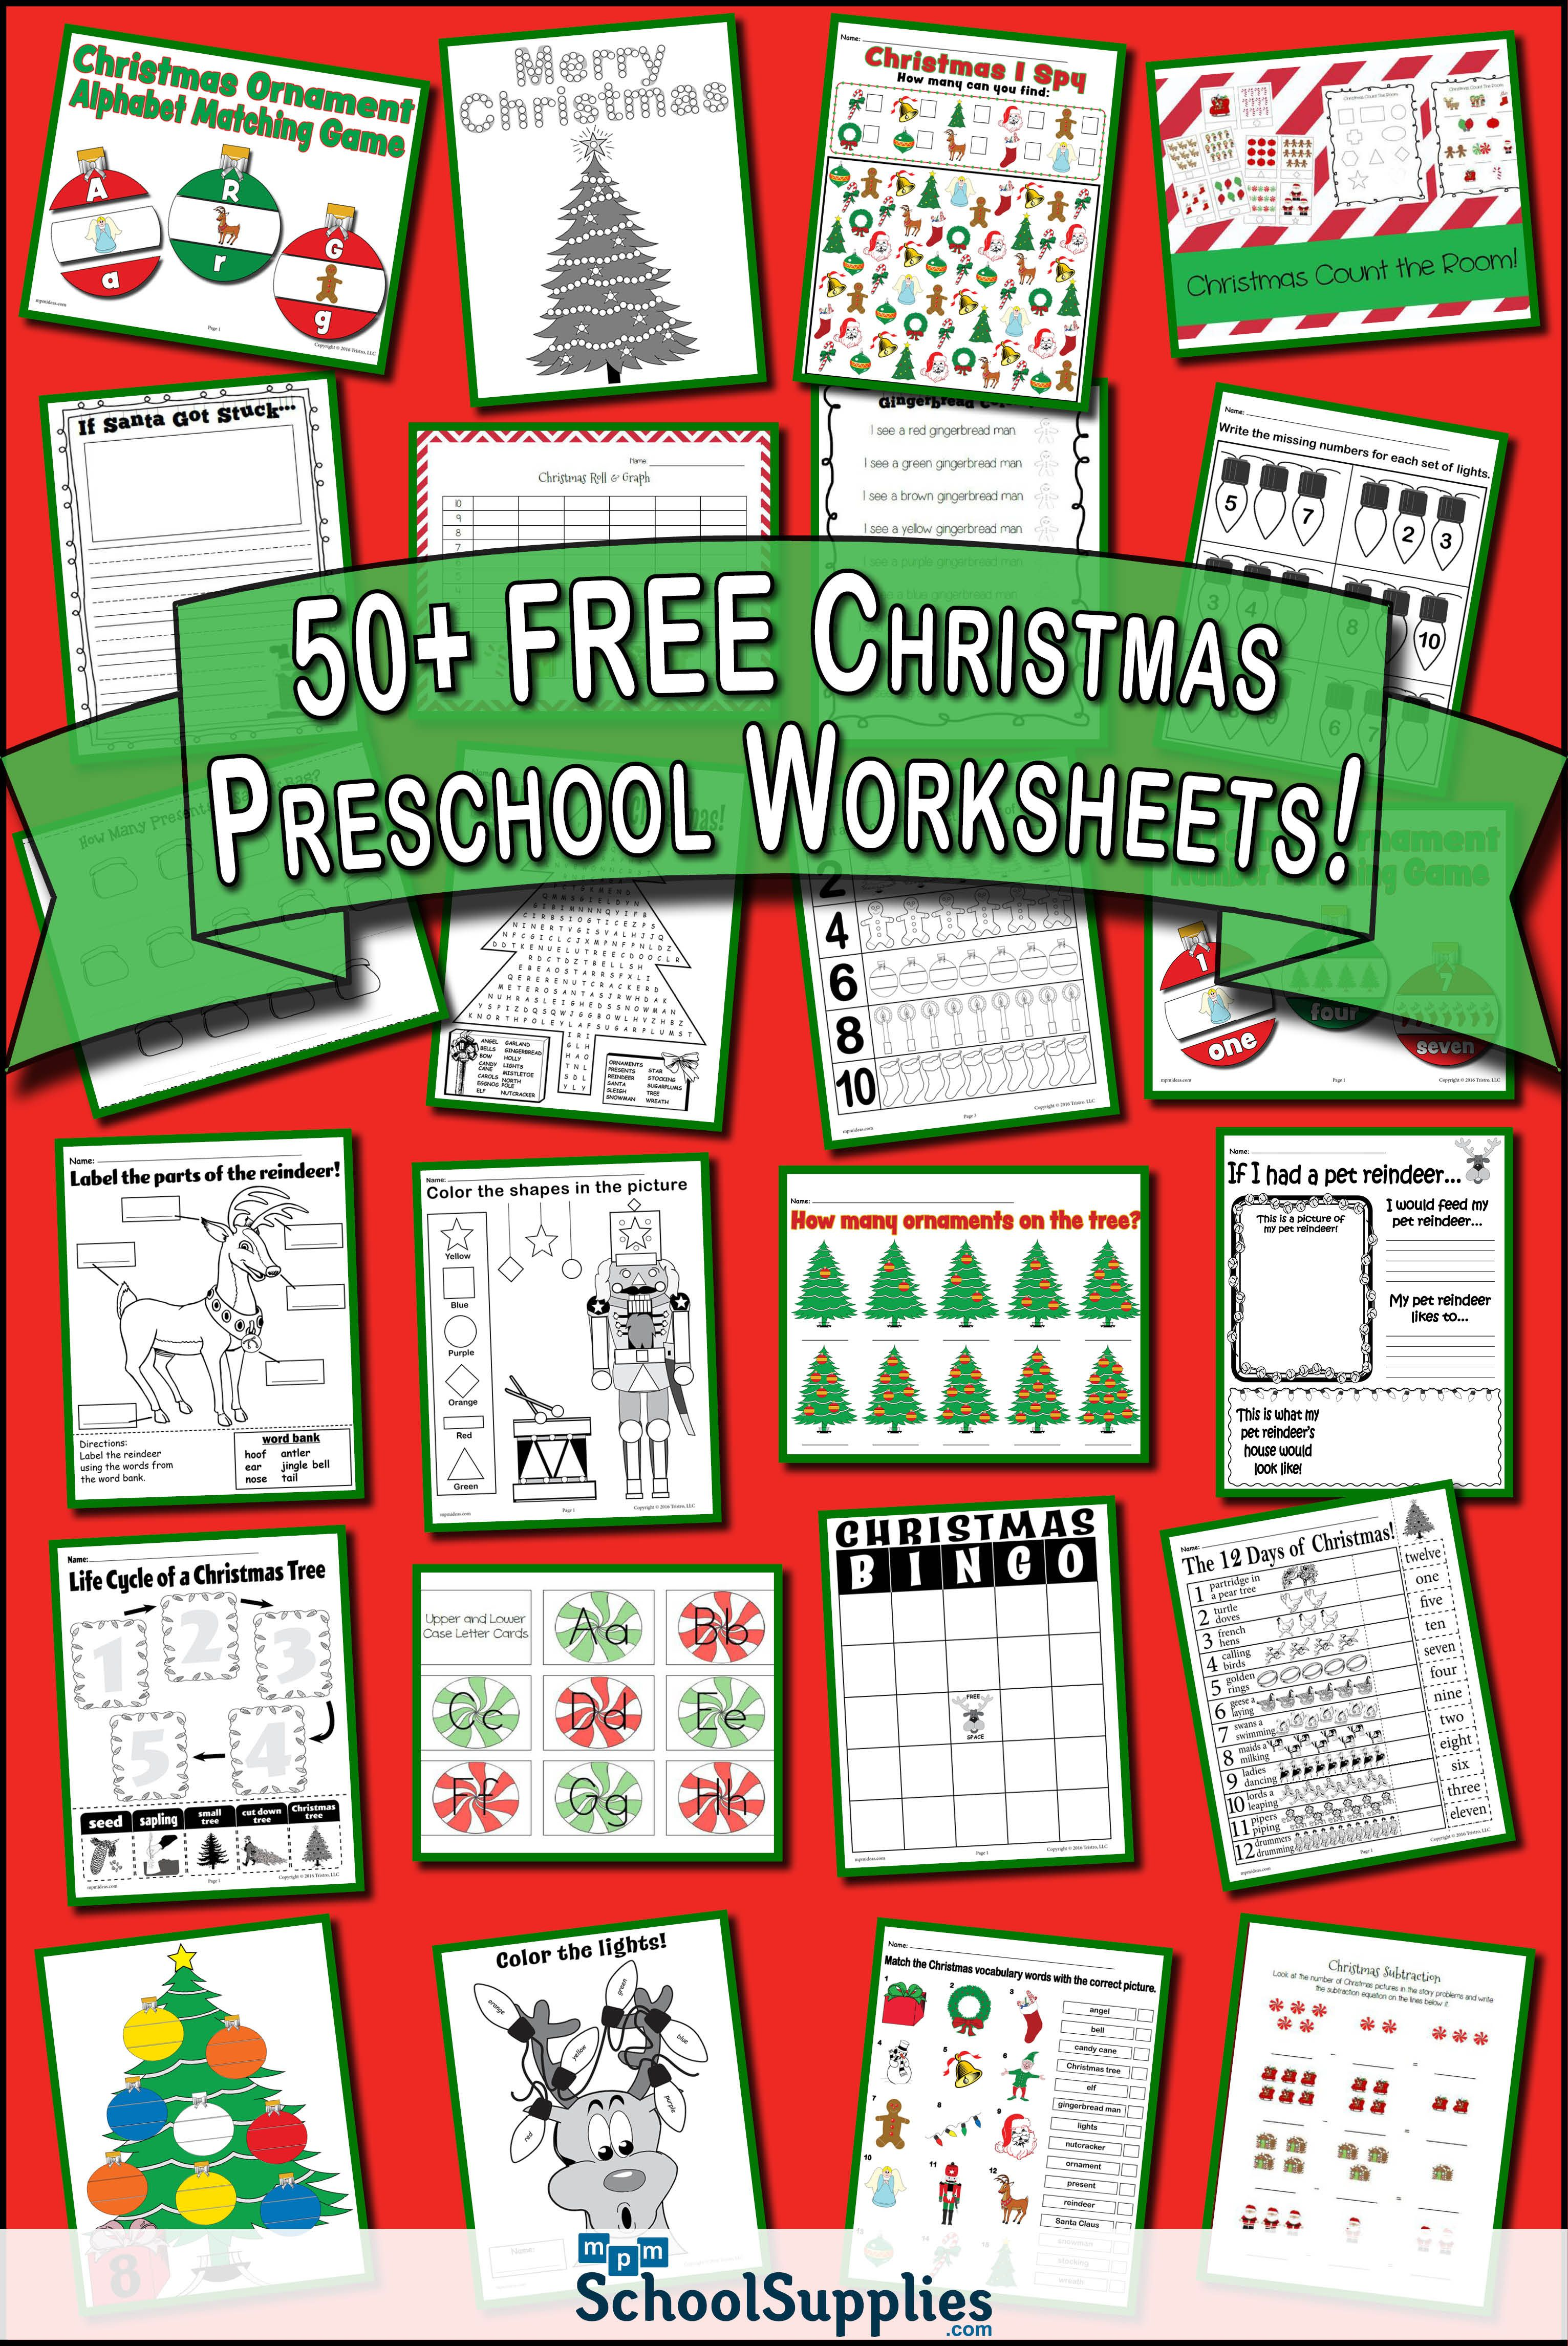 Over 50 Free Christmas Preschool Worksheets Our Christmas